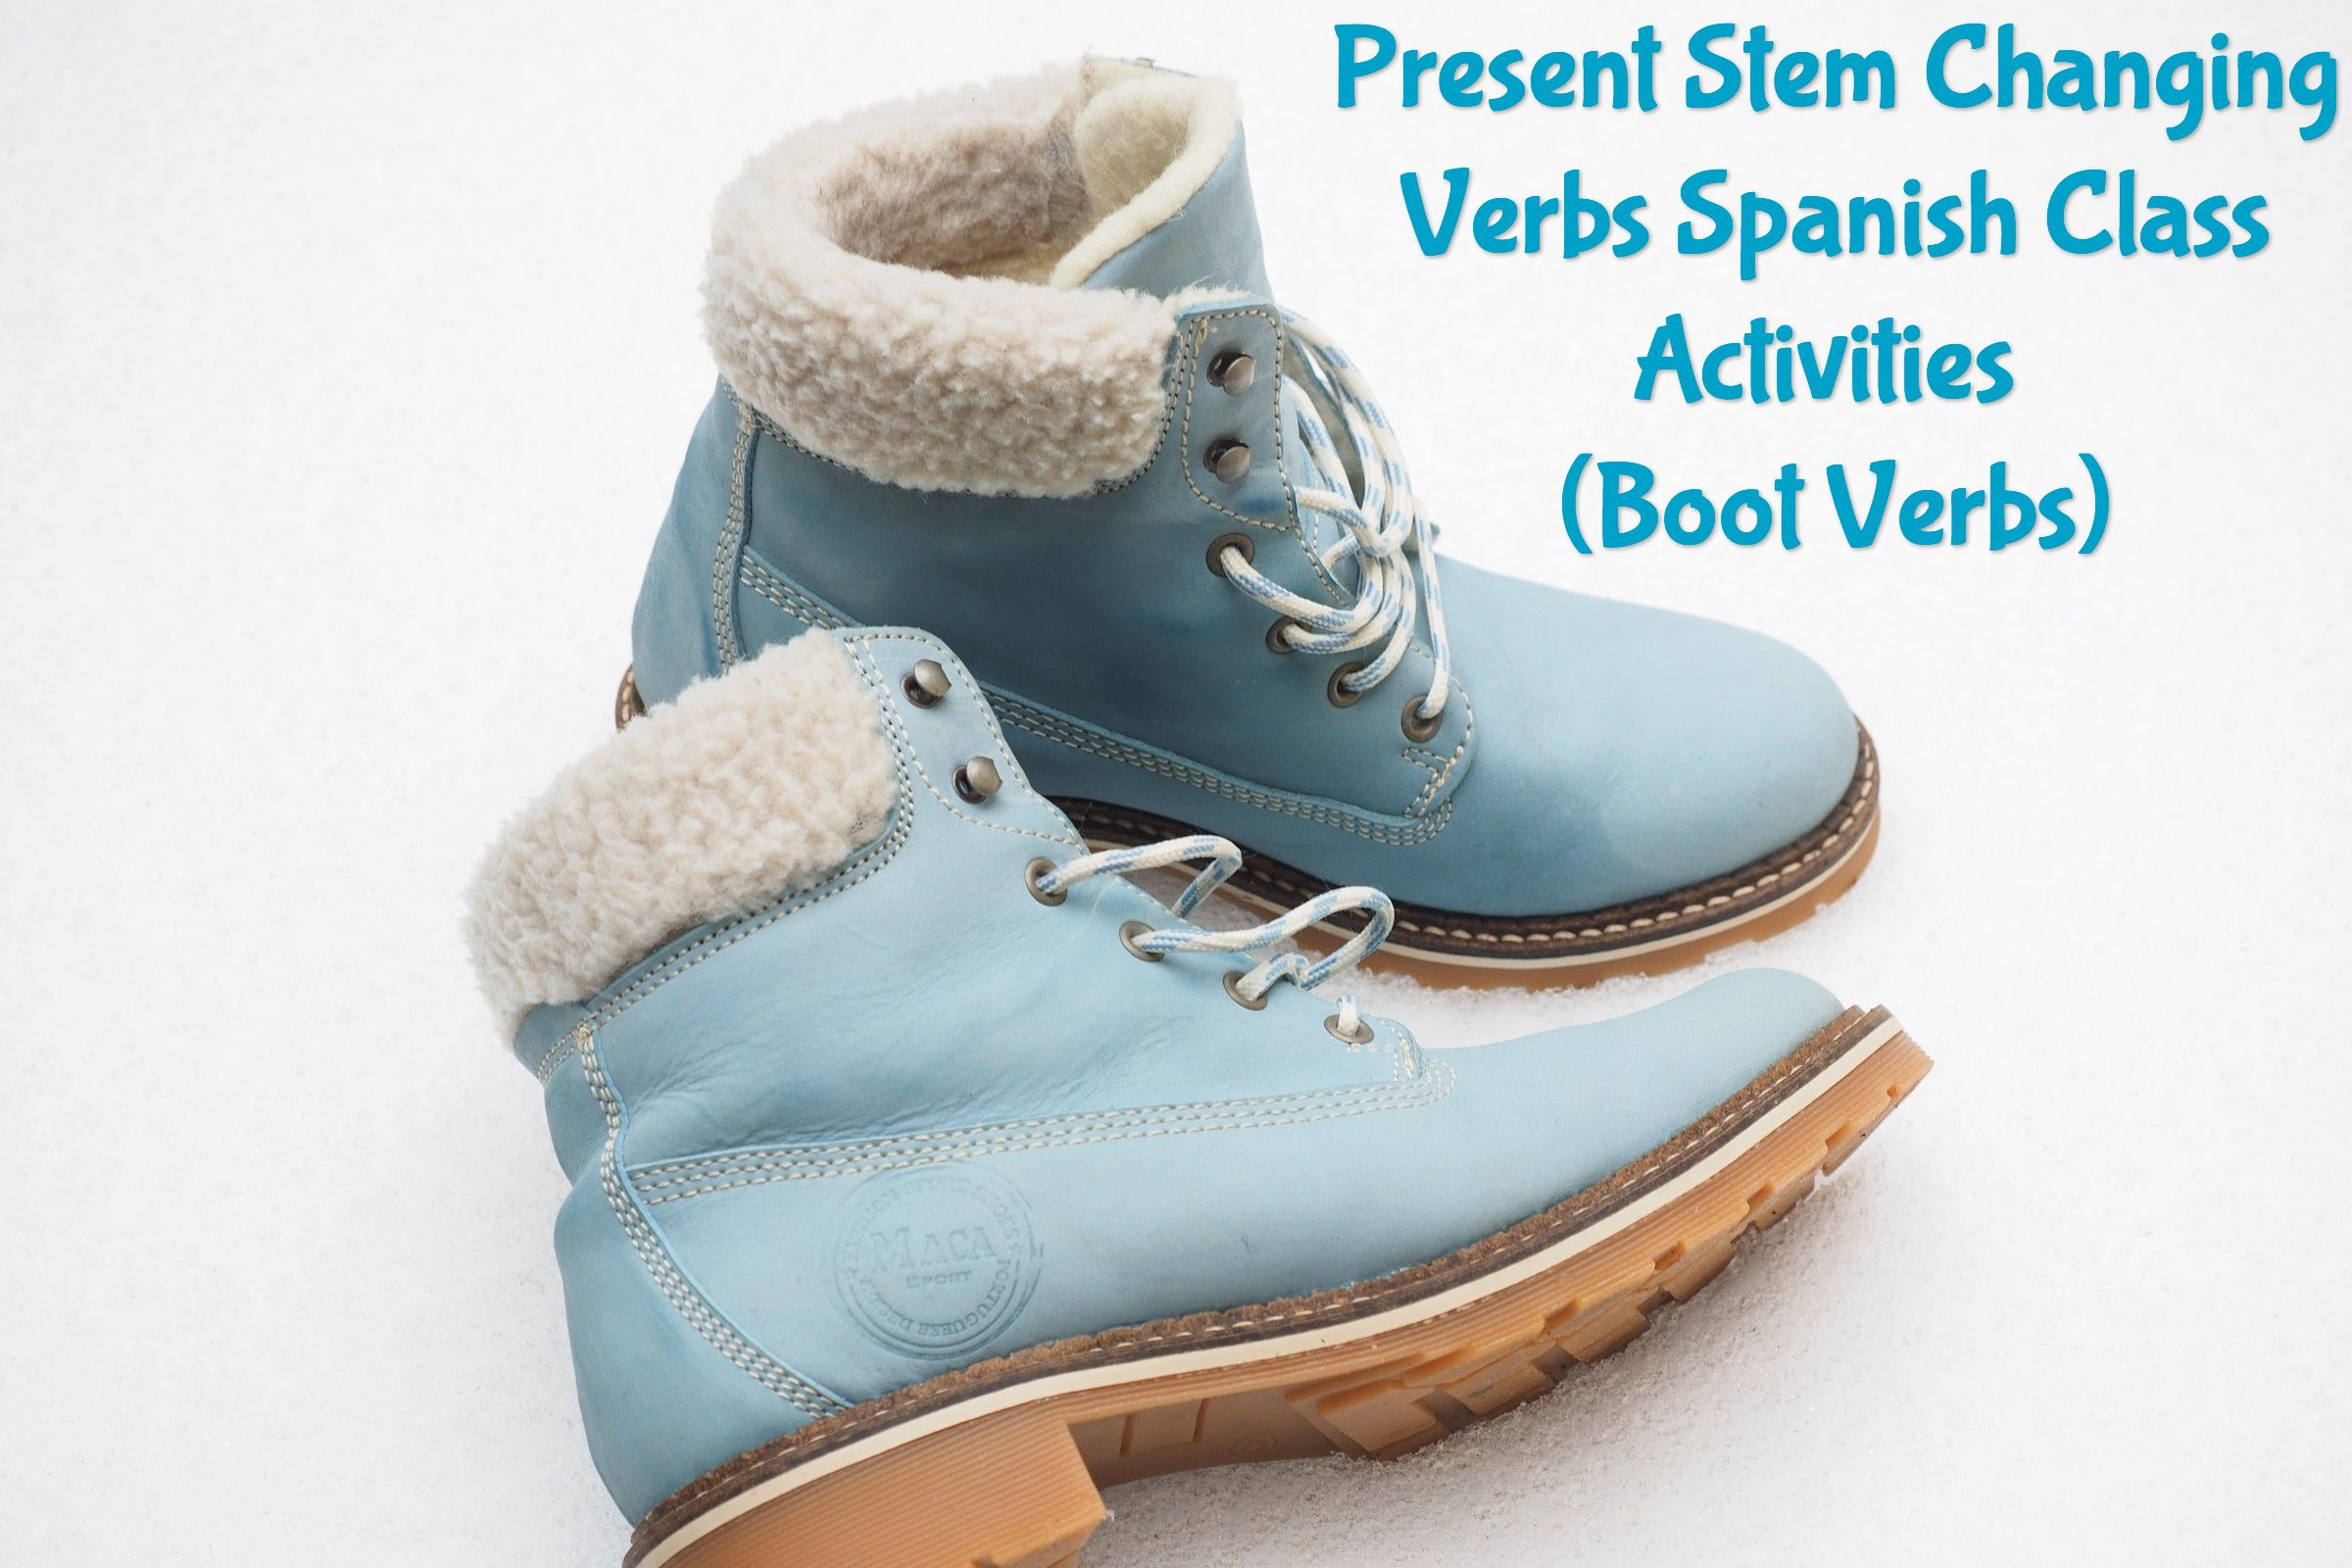 Present Stem Changing Verbs Spanish Class Activities Boot Verbs Blue Winter Boots Womens Fashion Shoes Boots